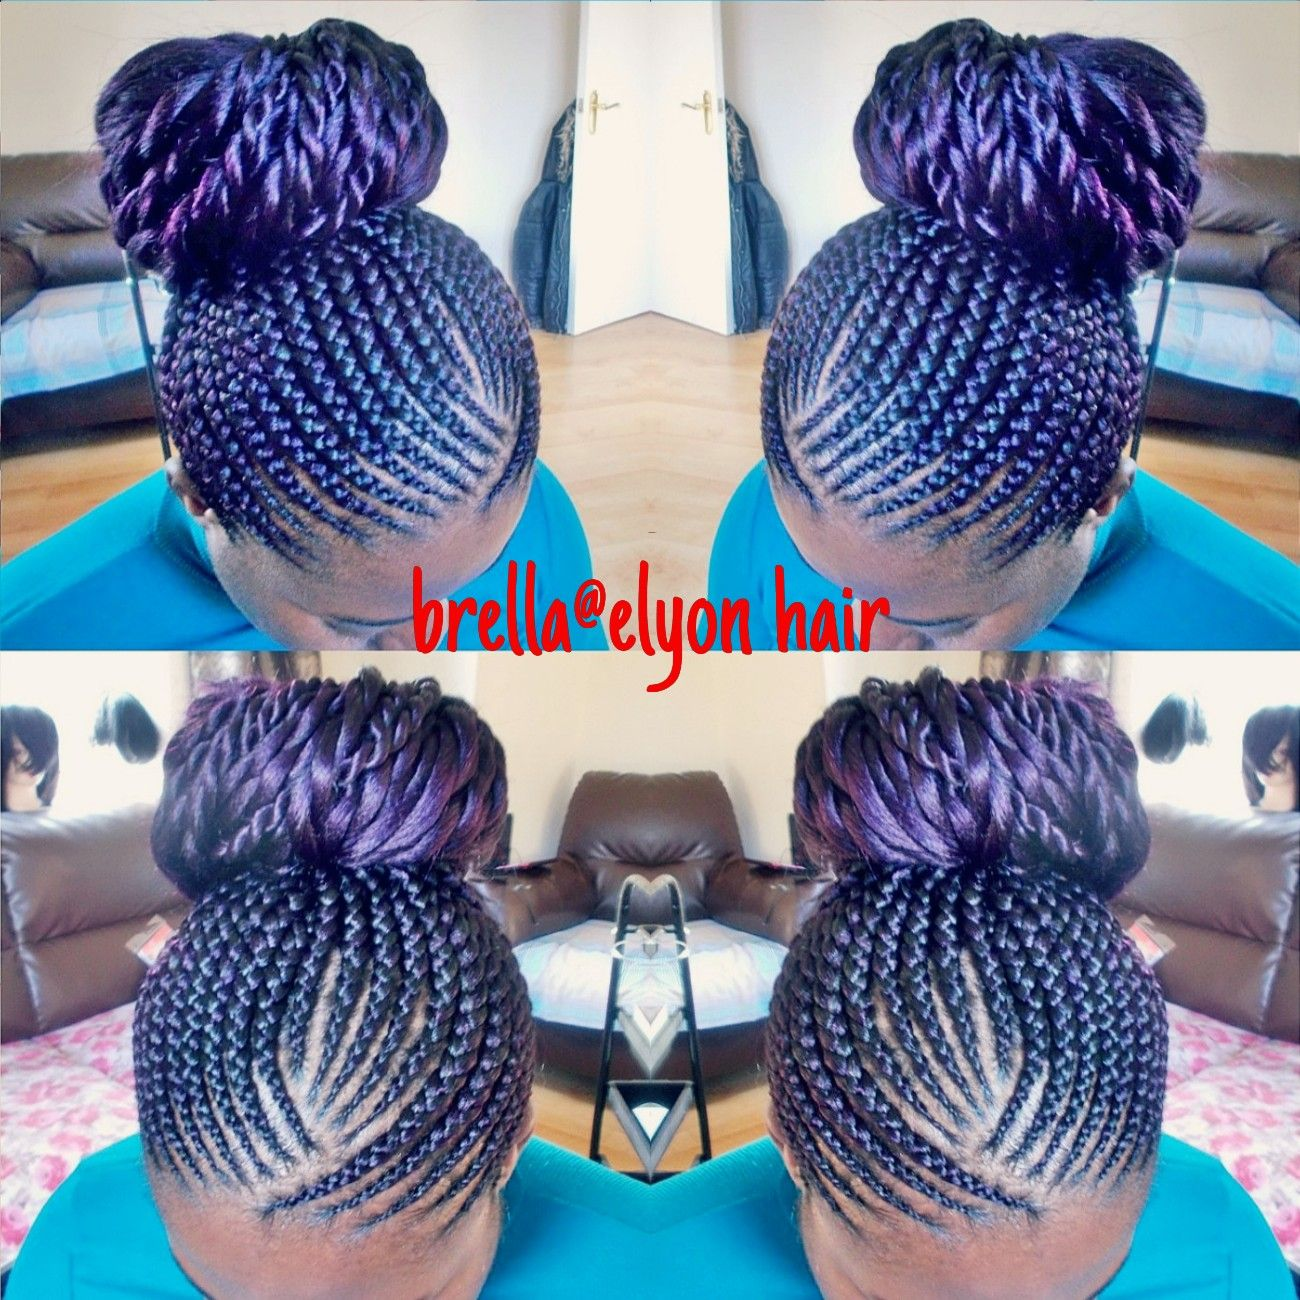 Magnificent Invisible Cornrow Braids Done With Color Purple Xpression Hair Short Hairstyles Gunalazisus